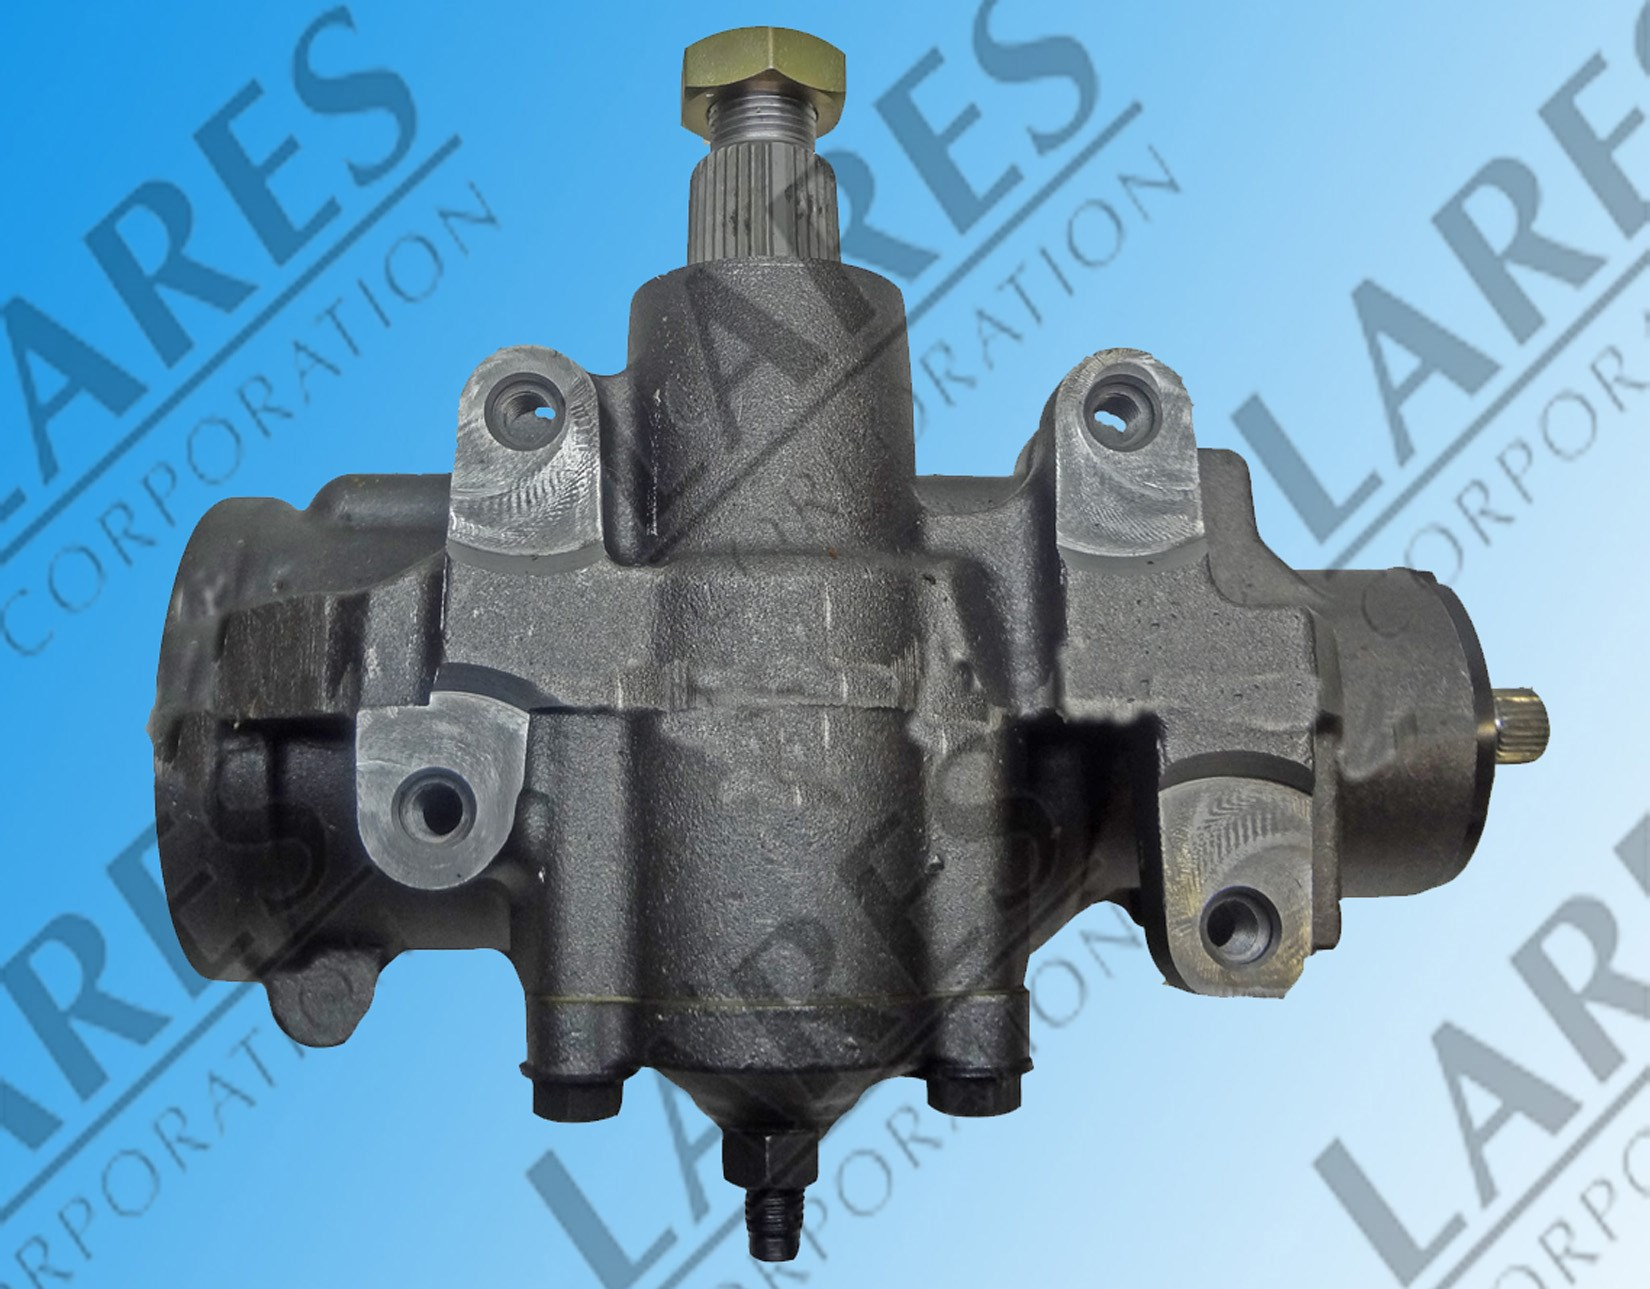 Power Steering Gear, Part No. 11262-a